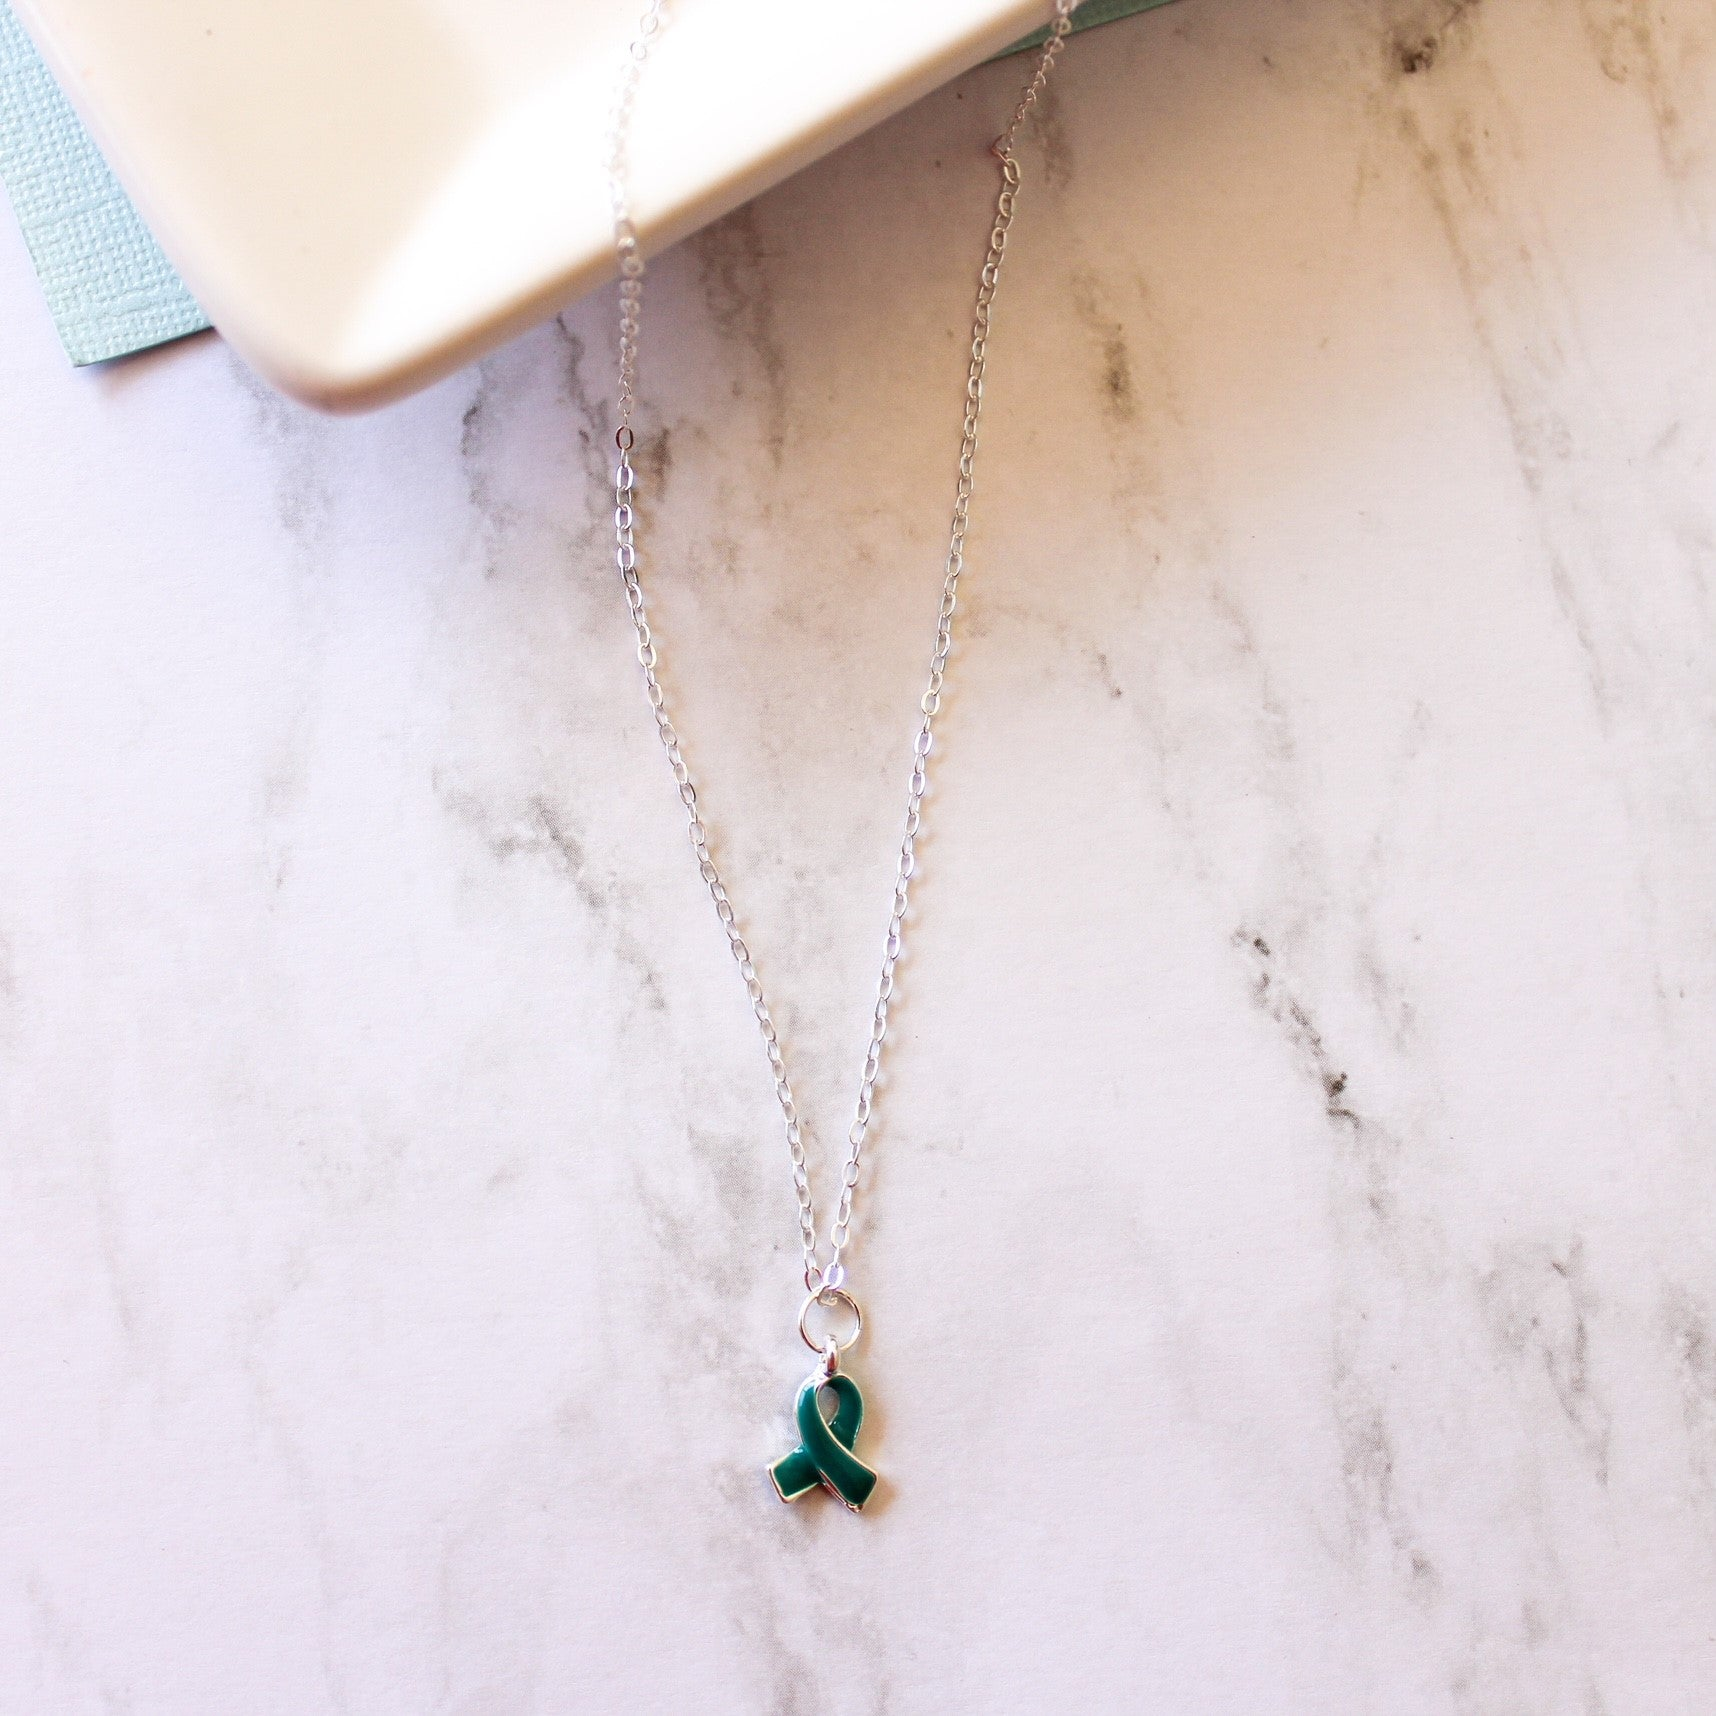 Sterling Silver Collection - The Peyton Necklace With Teal Ribbon Charm - Food Allergy Awareness